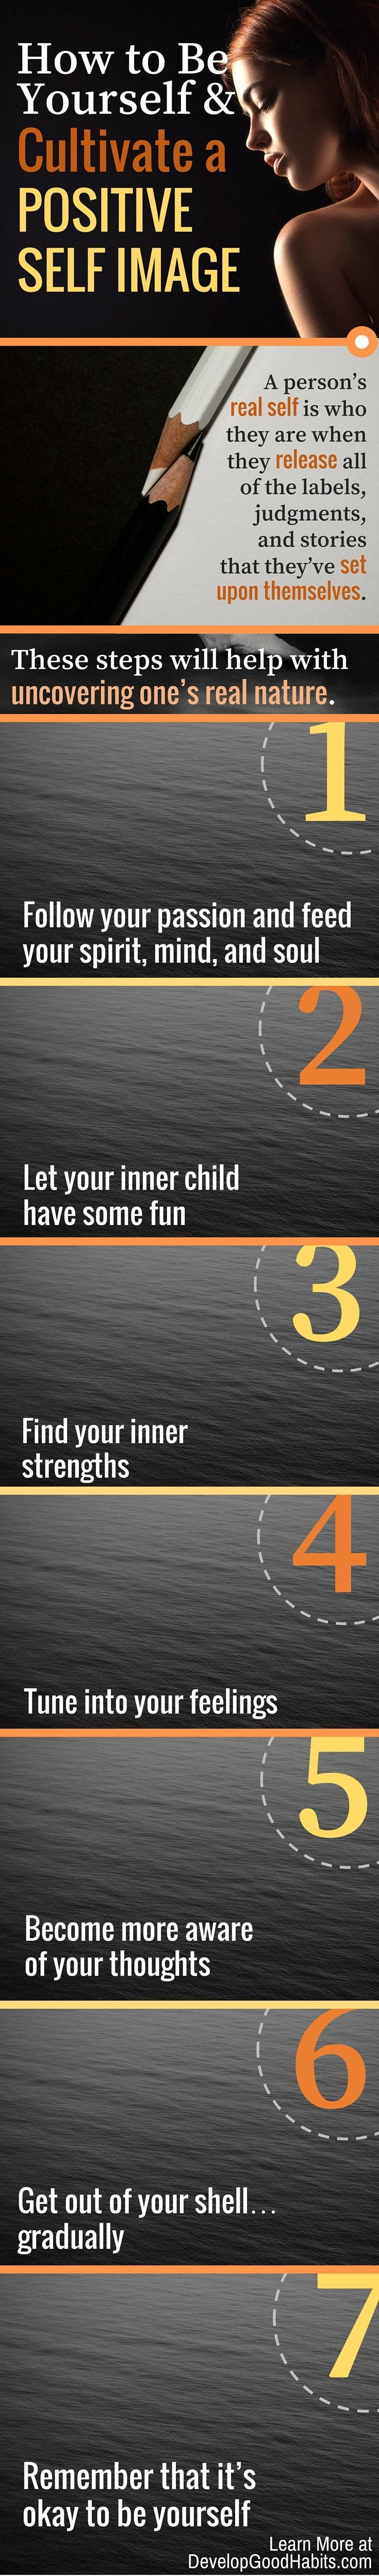 Be your real self. Ignore labels and judgement. http://www.developgoodhabits.com/  Click to view inforgraphic, Click again to enlarge